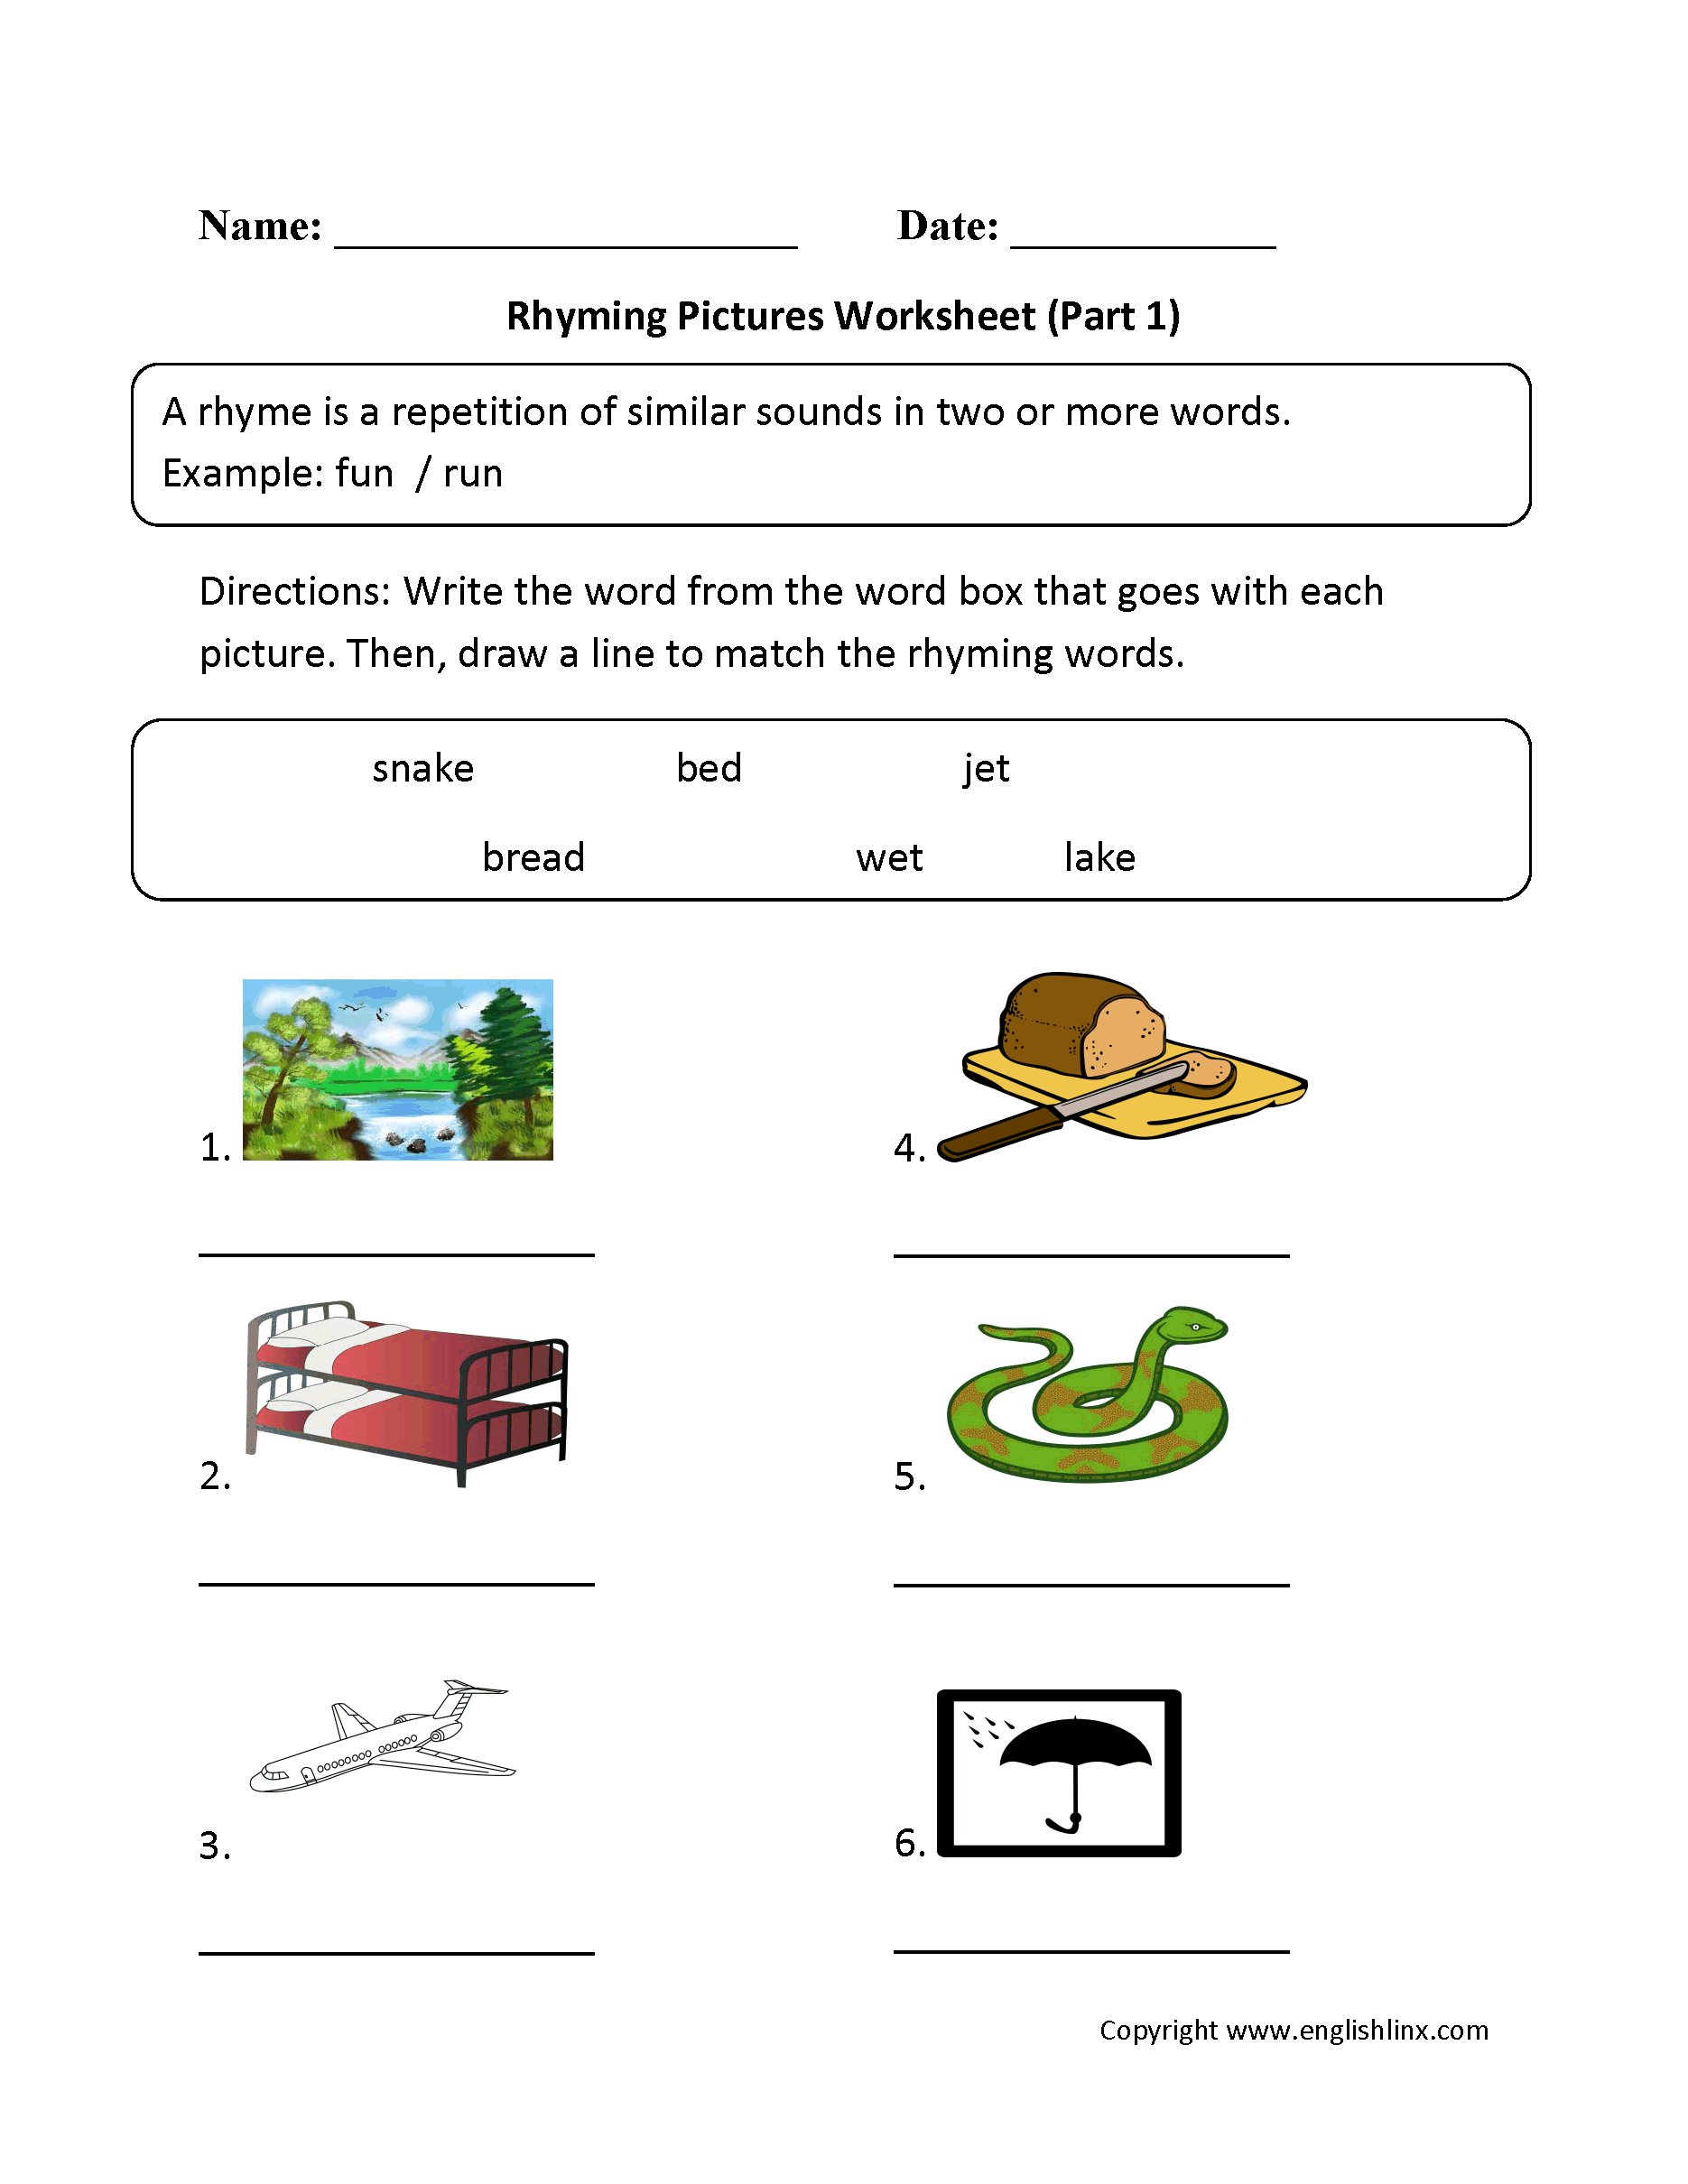 Worksheet Rythming englishlinx com rhyming worksheets pictures worksheets